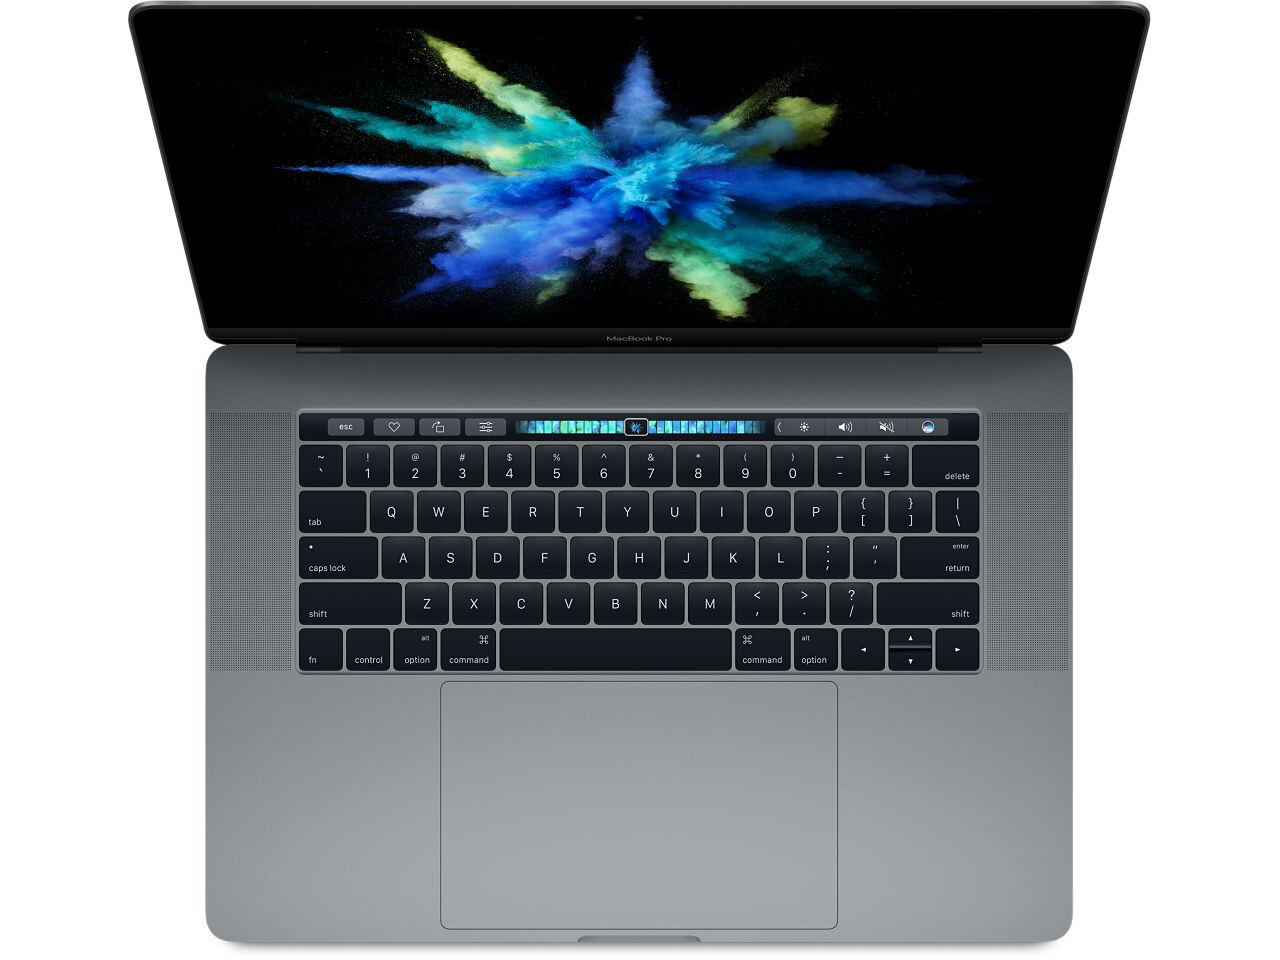 macbook pro 15 inch touch bar 2016 space gray